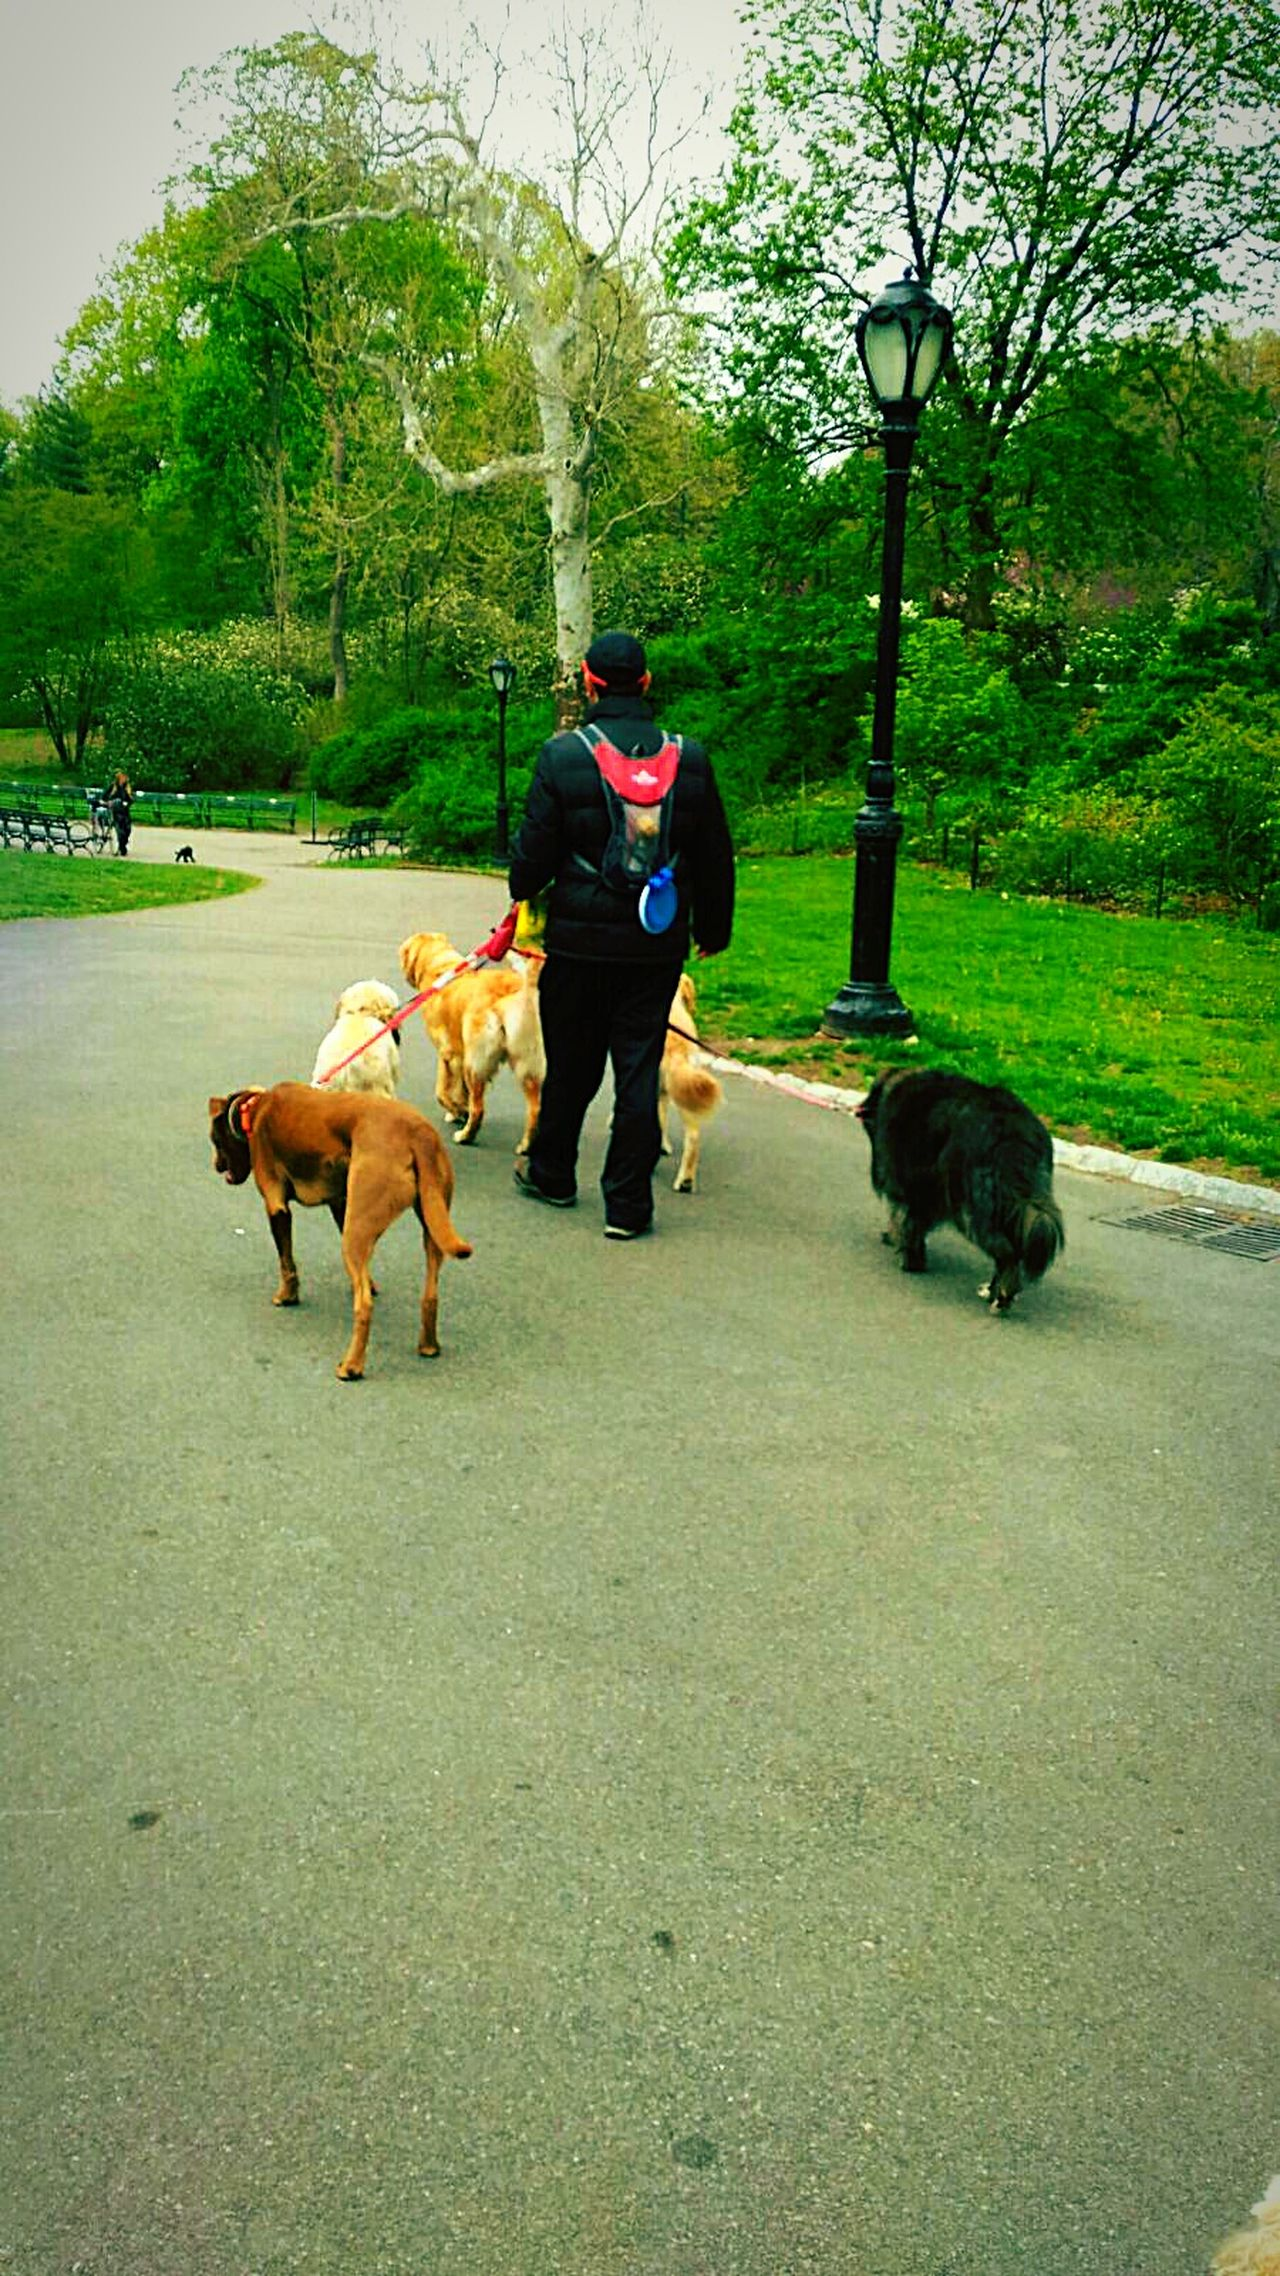 Up Close Street Photography Enjoying Life New York New York City New York Life EyeEm Best Shots EyeEm Best Edits Eyeem Market Walking Around Dogs Of EyeEm Dog Love EyeEm Animal Lover Hello World Check This Out Taking Photos Walking With The Dog Walking The Dog Love Dogs Dog Dog Walker Pitbull Central Park Central Park - NYC Showing Imperfection